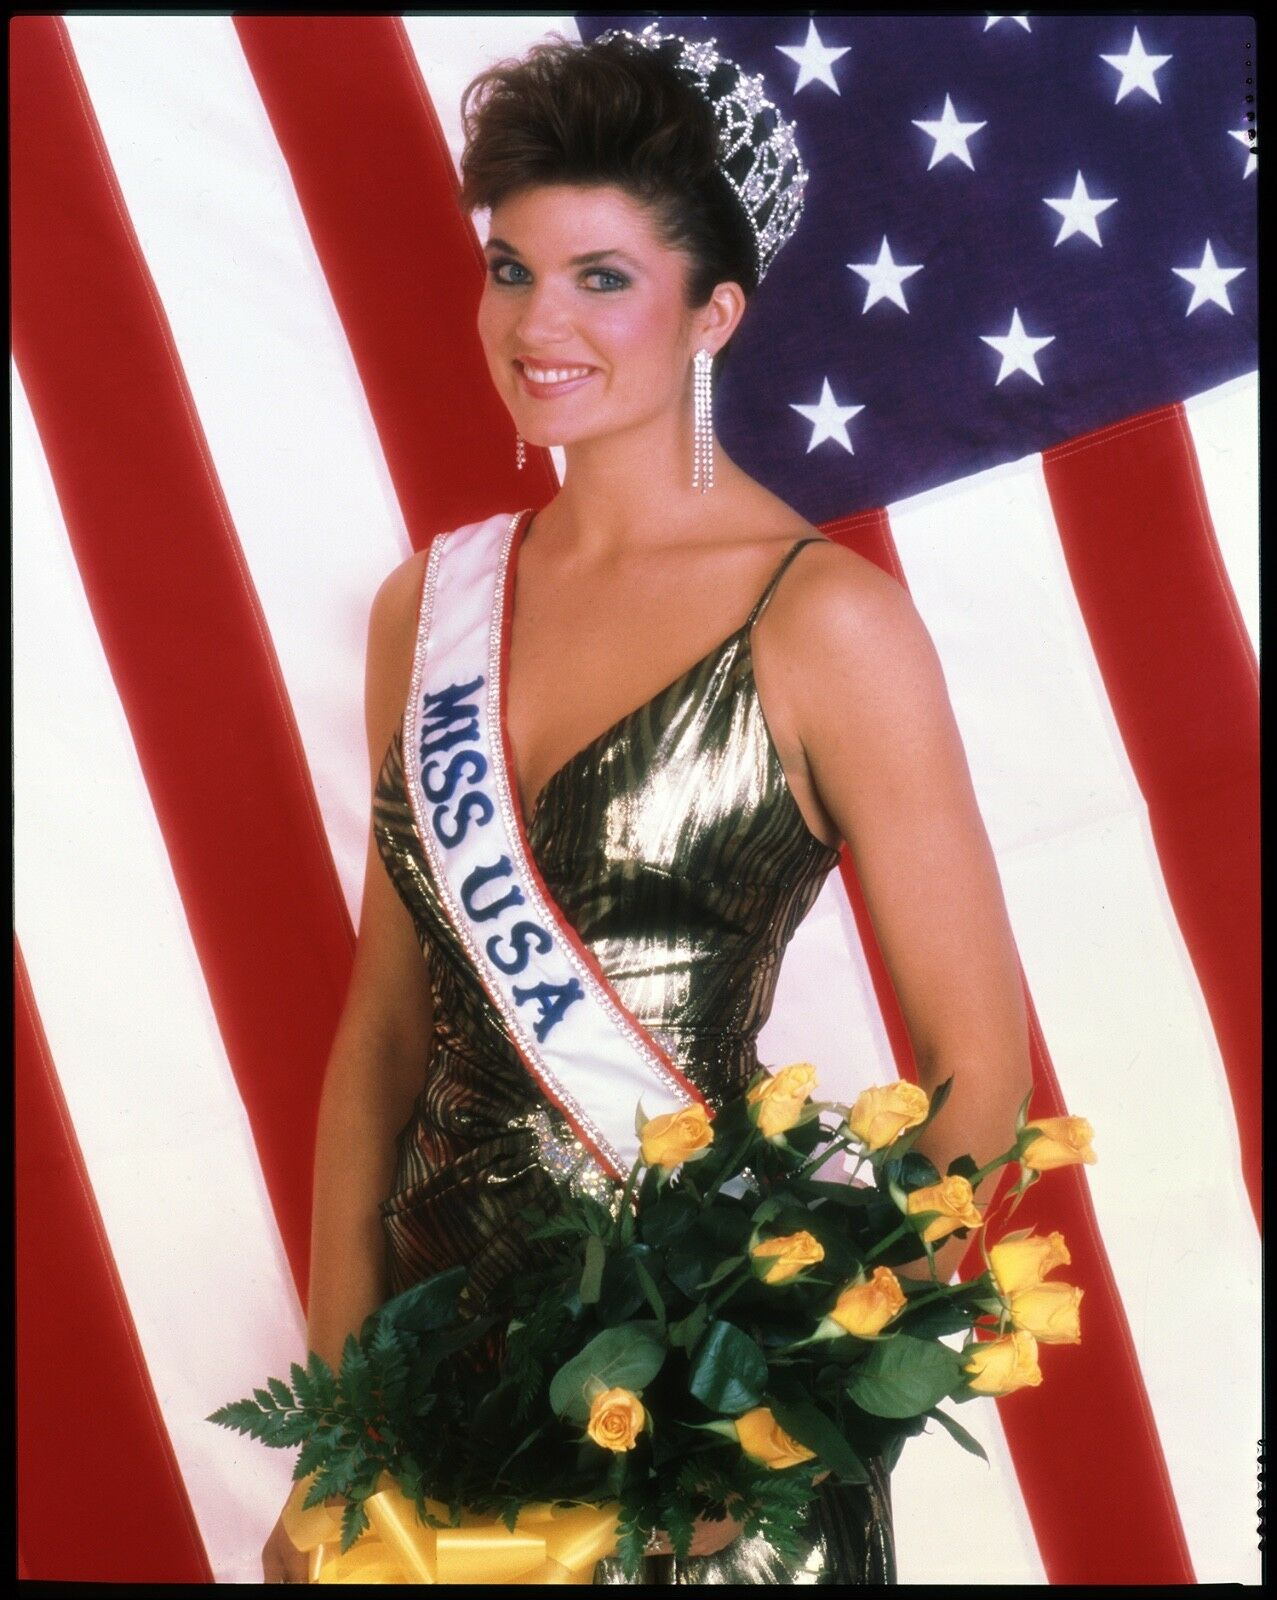 michelle royer, 2nd runner-up de miss universe 1987. S-l16011